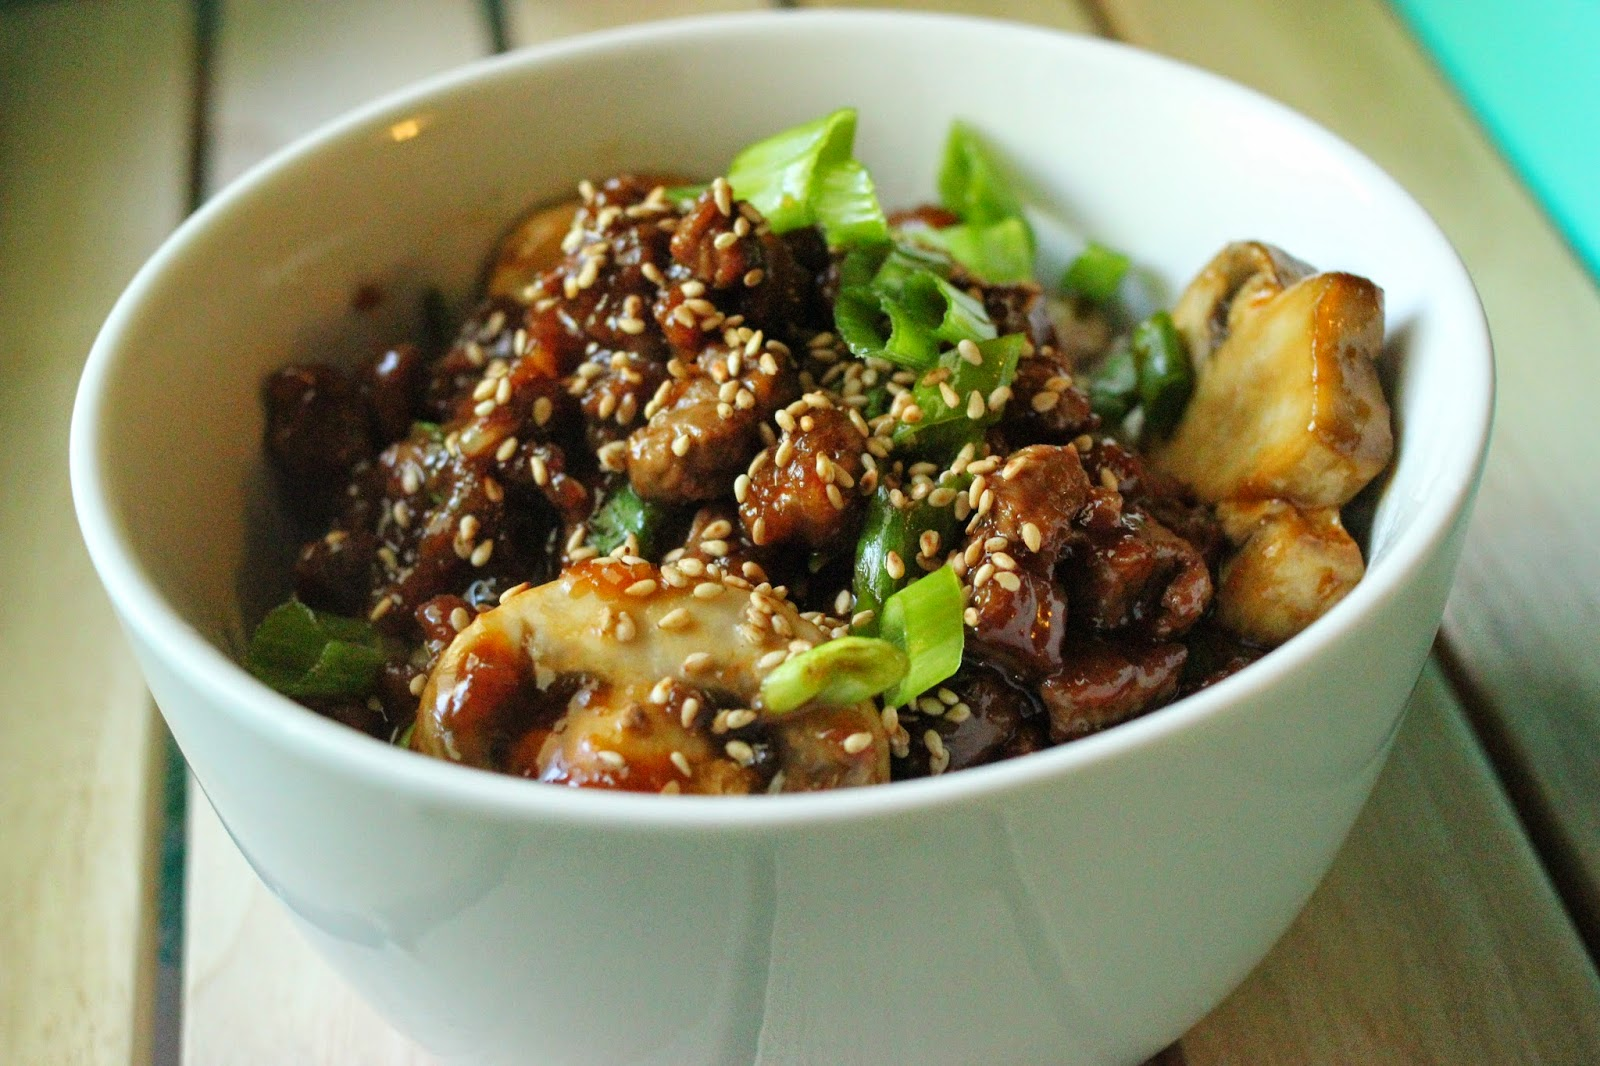 Easy Mongolian Beef with Mushrooms (Inspired by PF Chang's Copy Cat)